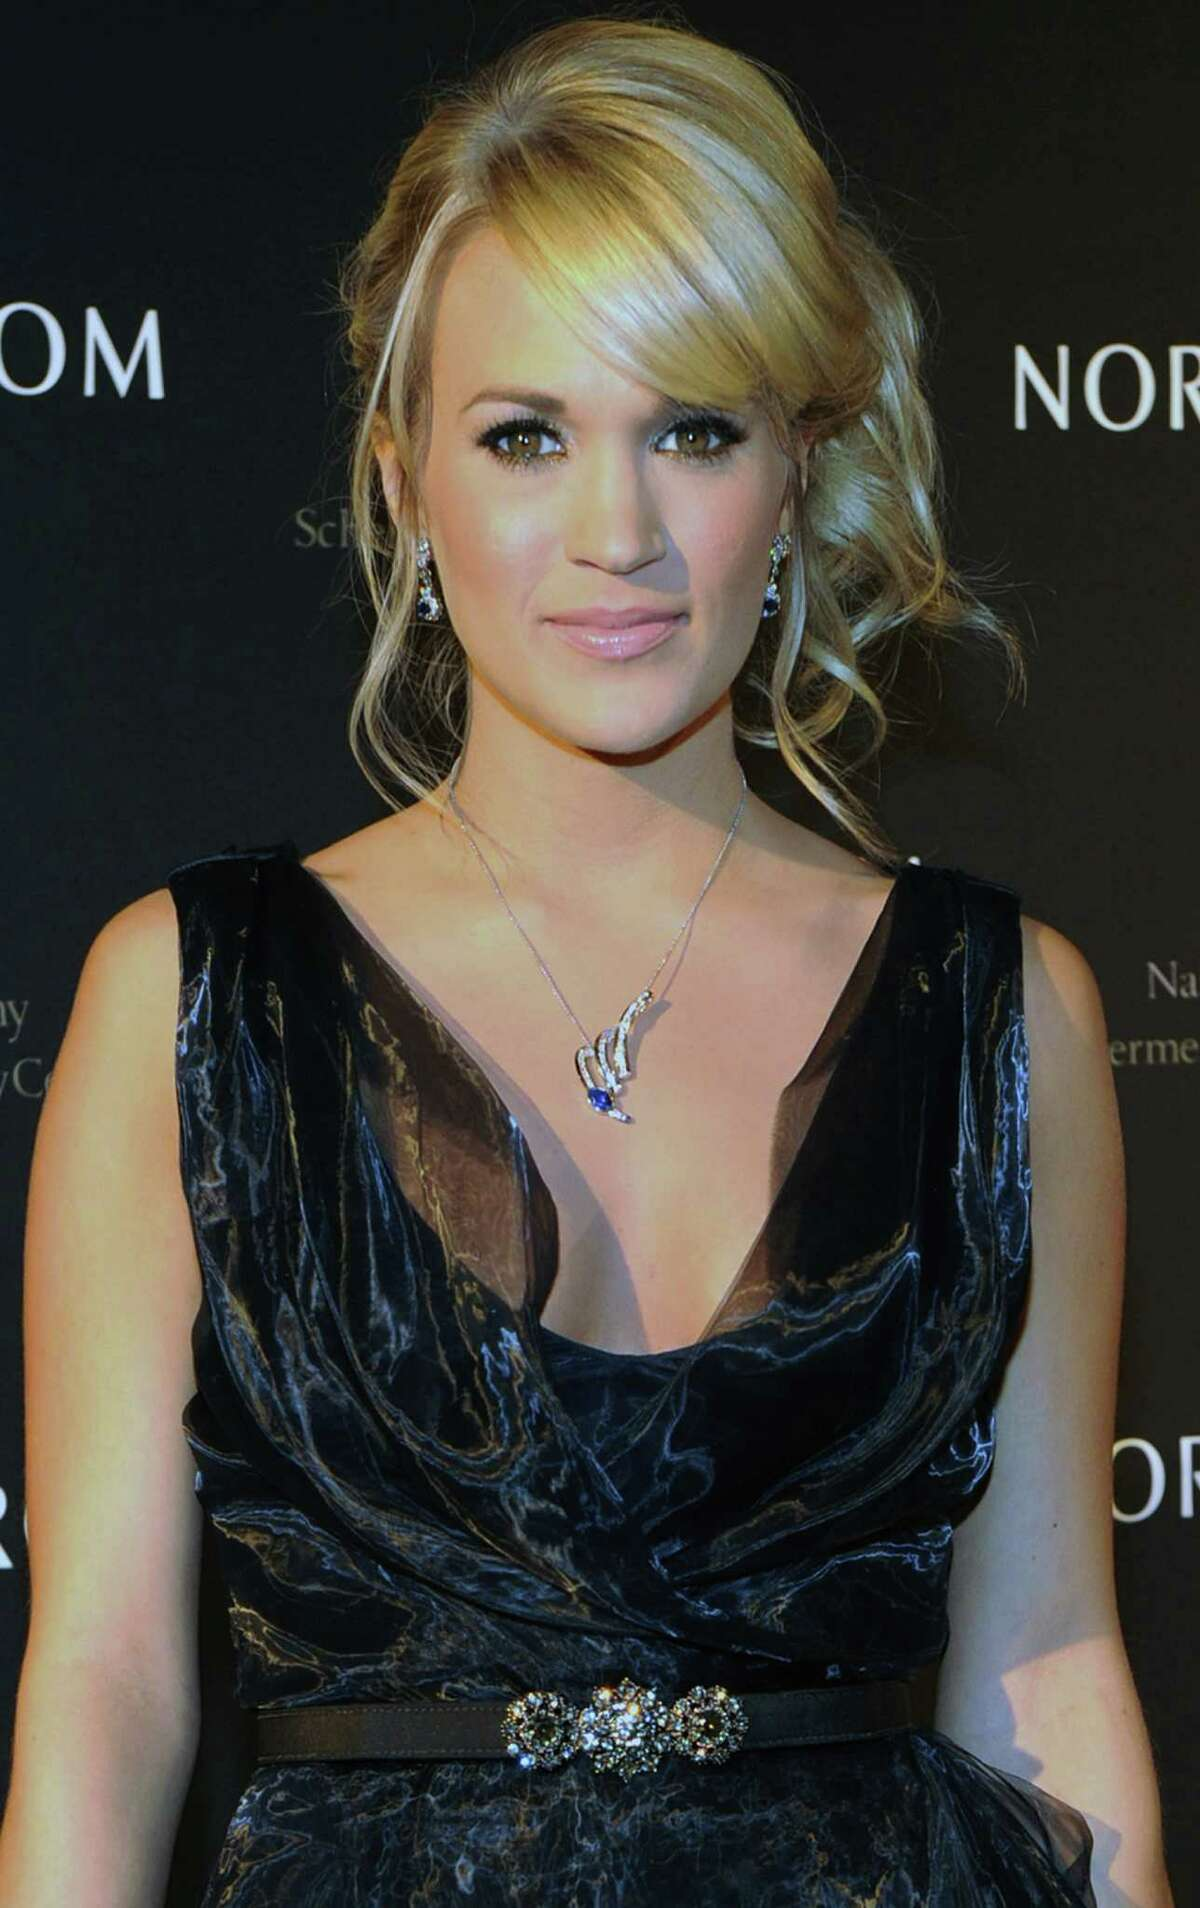 Singer/songwriter Carrie Underwood became a vegan after years of vegetarianism.